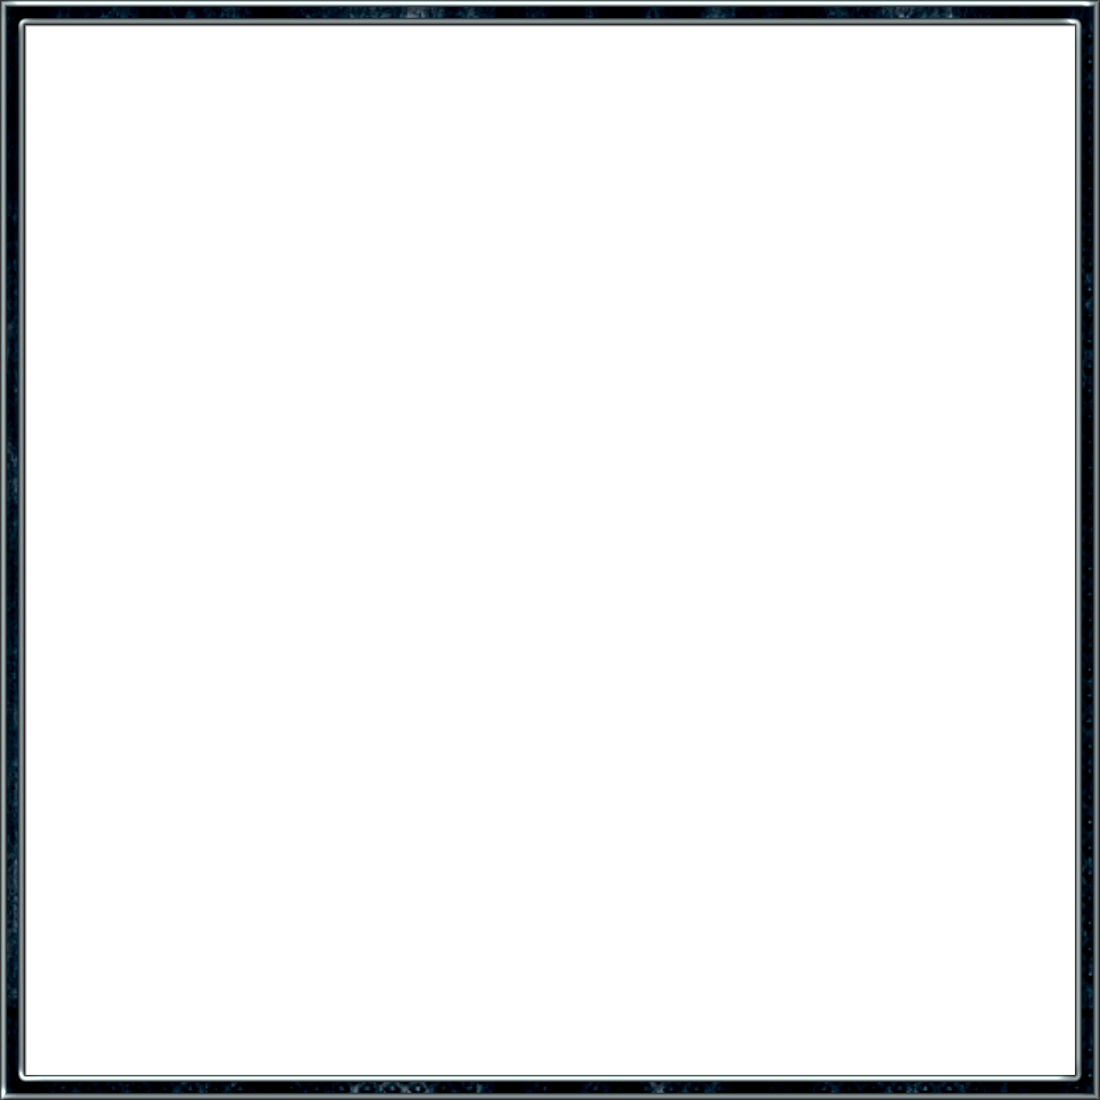 PNG Transparent Square Frame image #25167